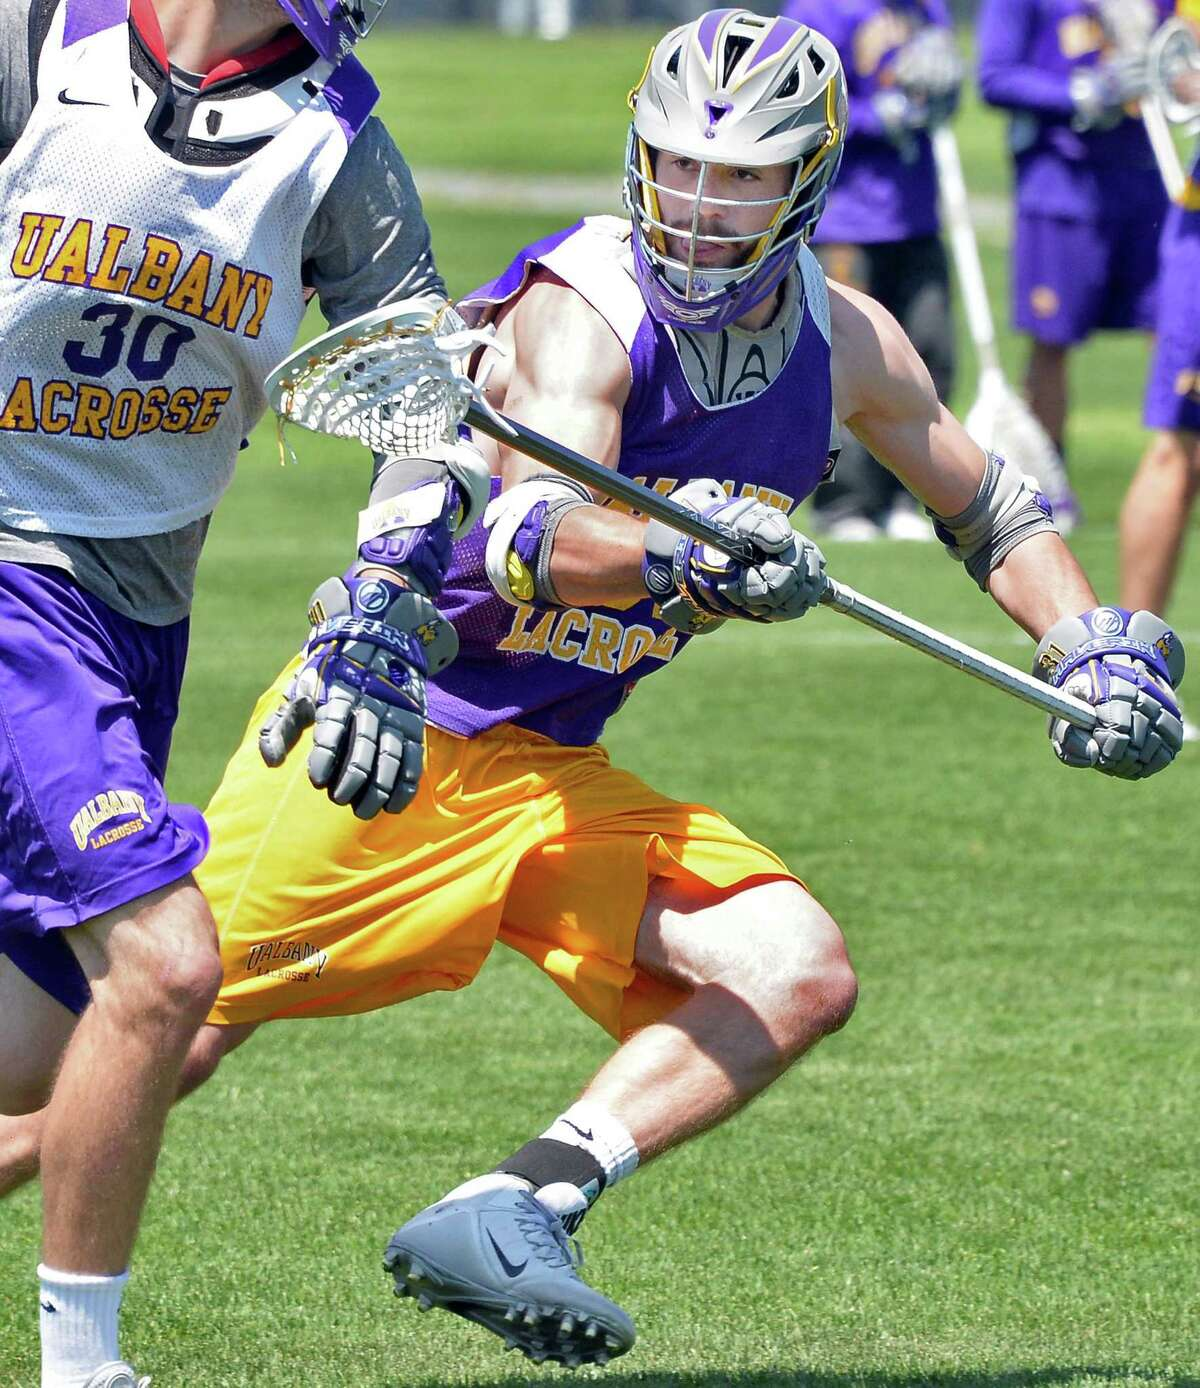 UAlbany lacrosse senior defenseman Mike Russell (No. 31) of Burnt Hills during practice Thursday May 14, 2015 in Albany, NY. (John Carl D'Annibale / Times Union)